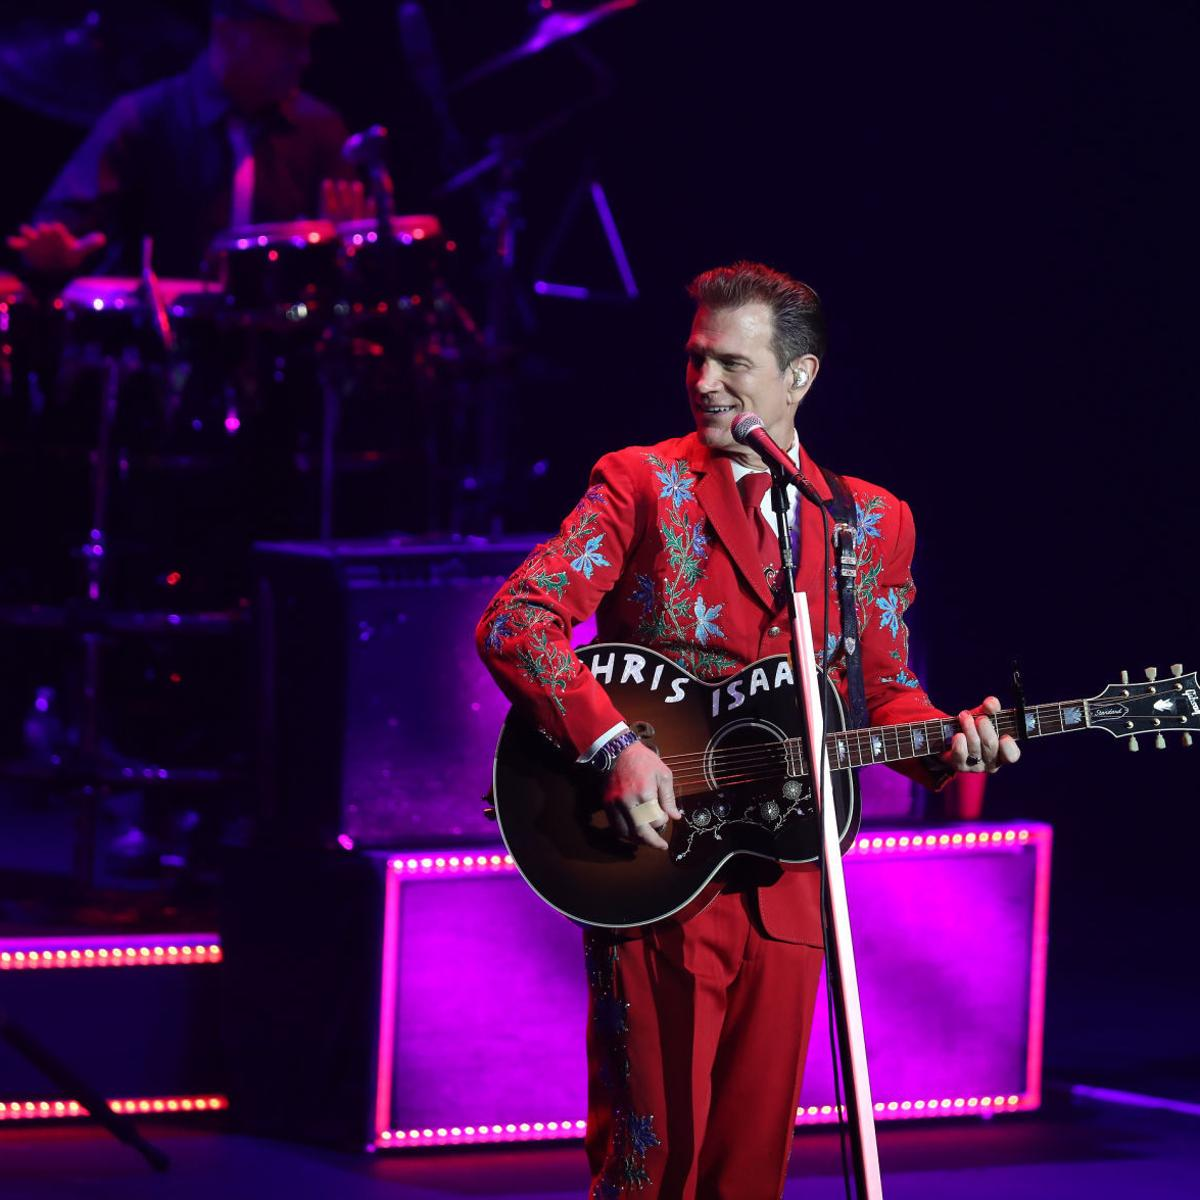 Chris Isaak sets show at The Joint on Dec  8 | Music